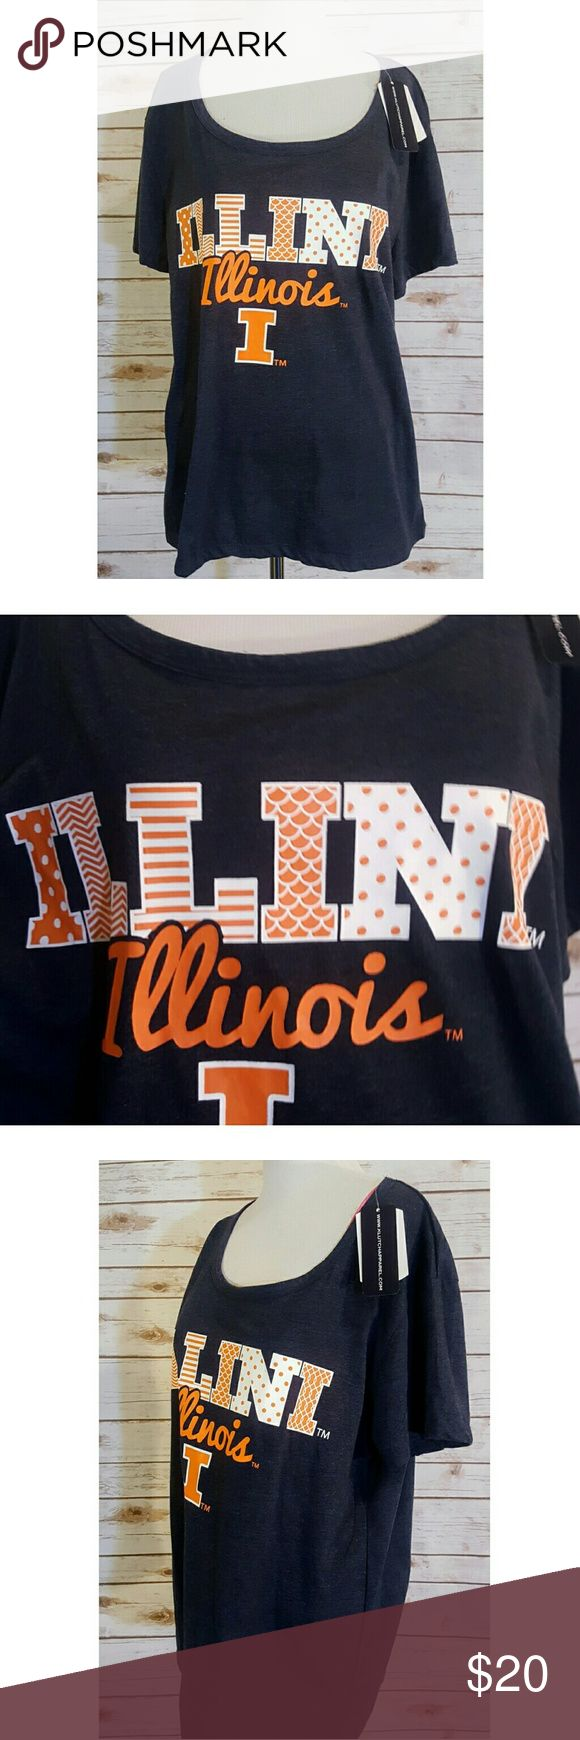 University of Illinois Fighting Illini 2x Tee NWT University of Illinois Fighting Illini 2x Tee NWT Women's Size 2X Measurements on Request New with Tags  Poly Cotton Blend Gift Quality  Thanks We Ship Fast  Updating New Items Daily Klutch Tops Tees - Short Sleeve